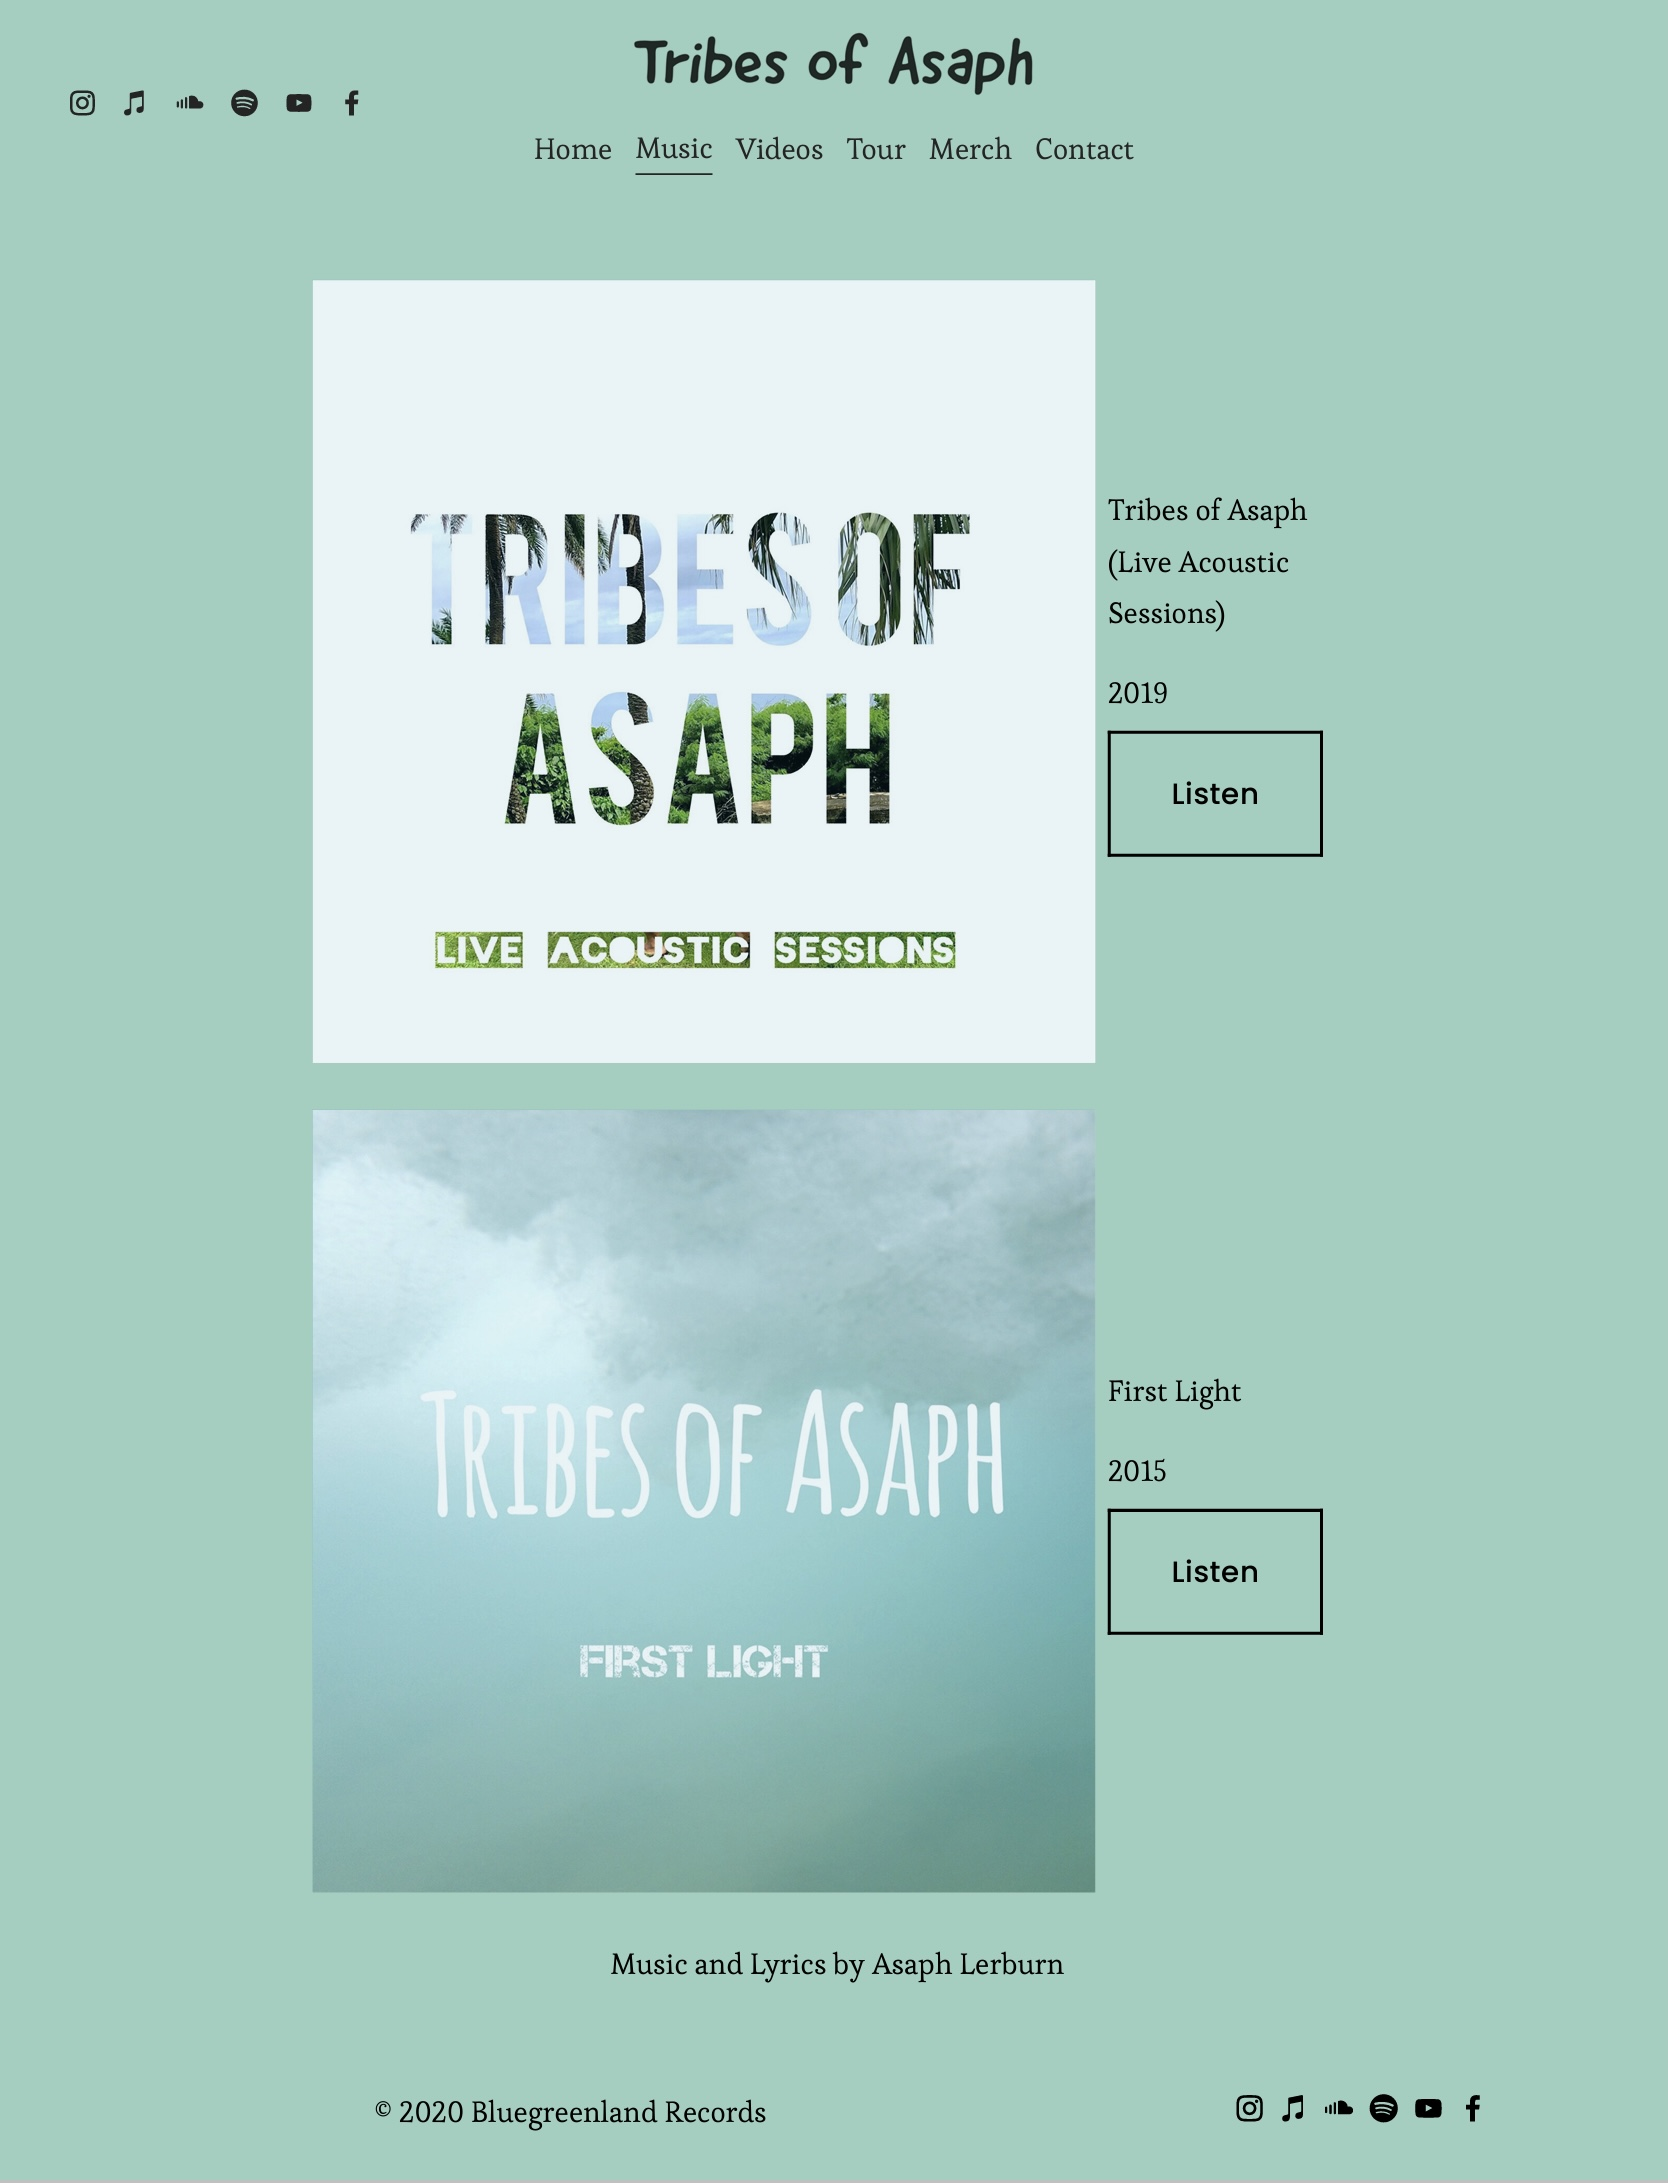 Tribes of Asaph - Music